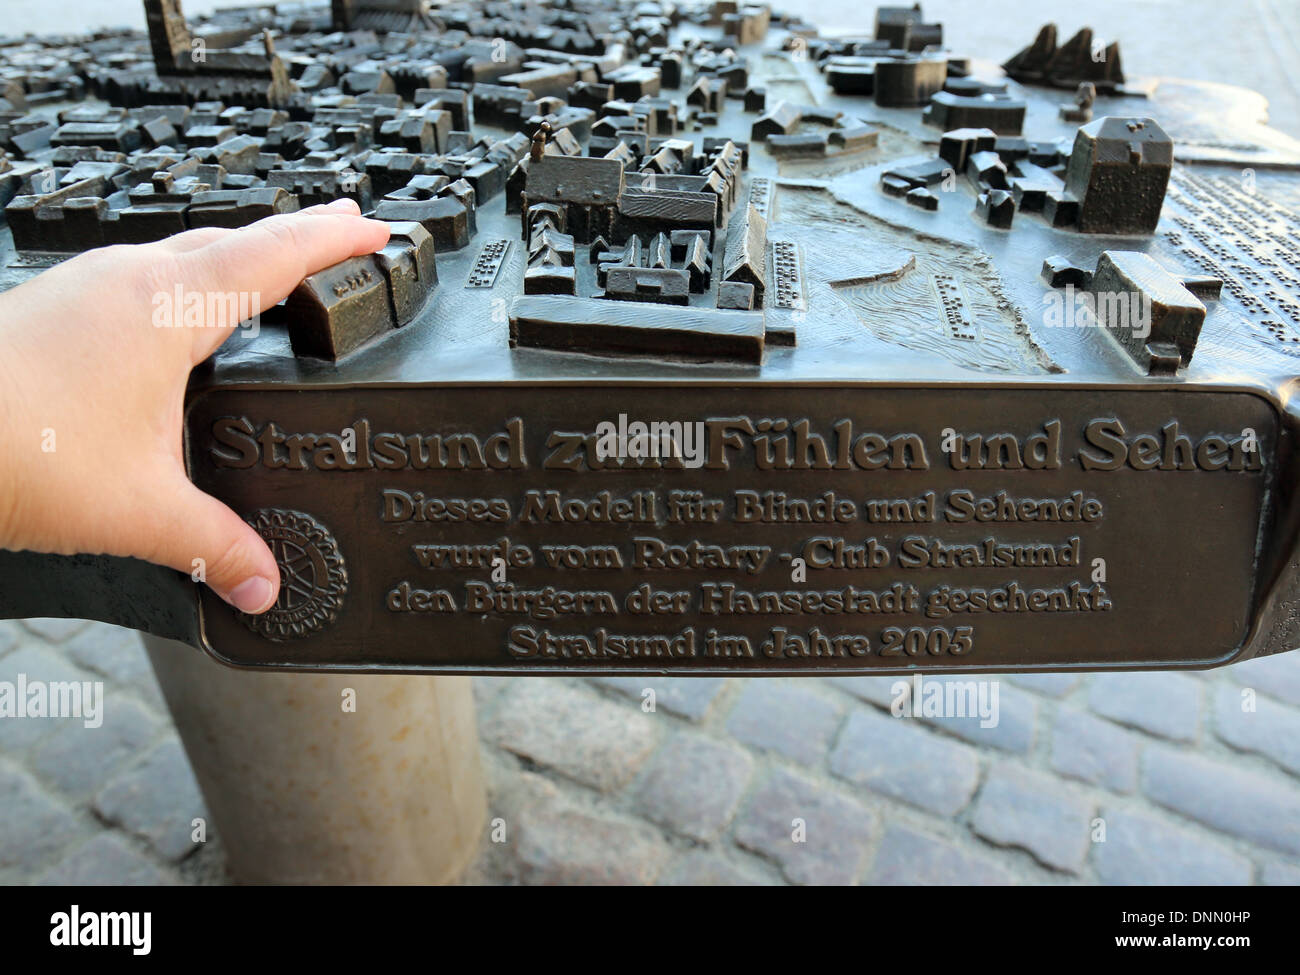 Stralsund, Germany, model of the city of Stralsund to feel and see - Stock Image